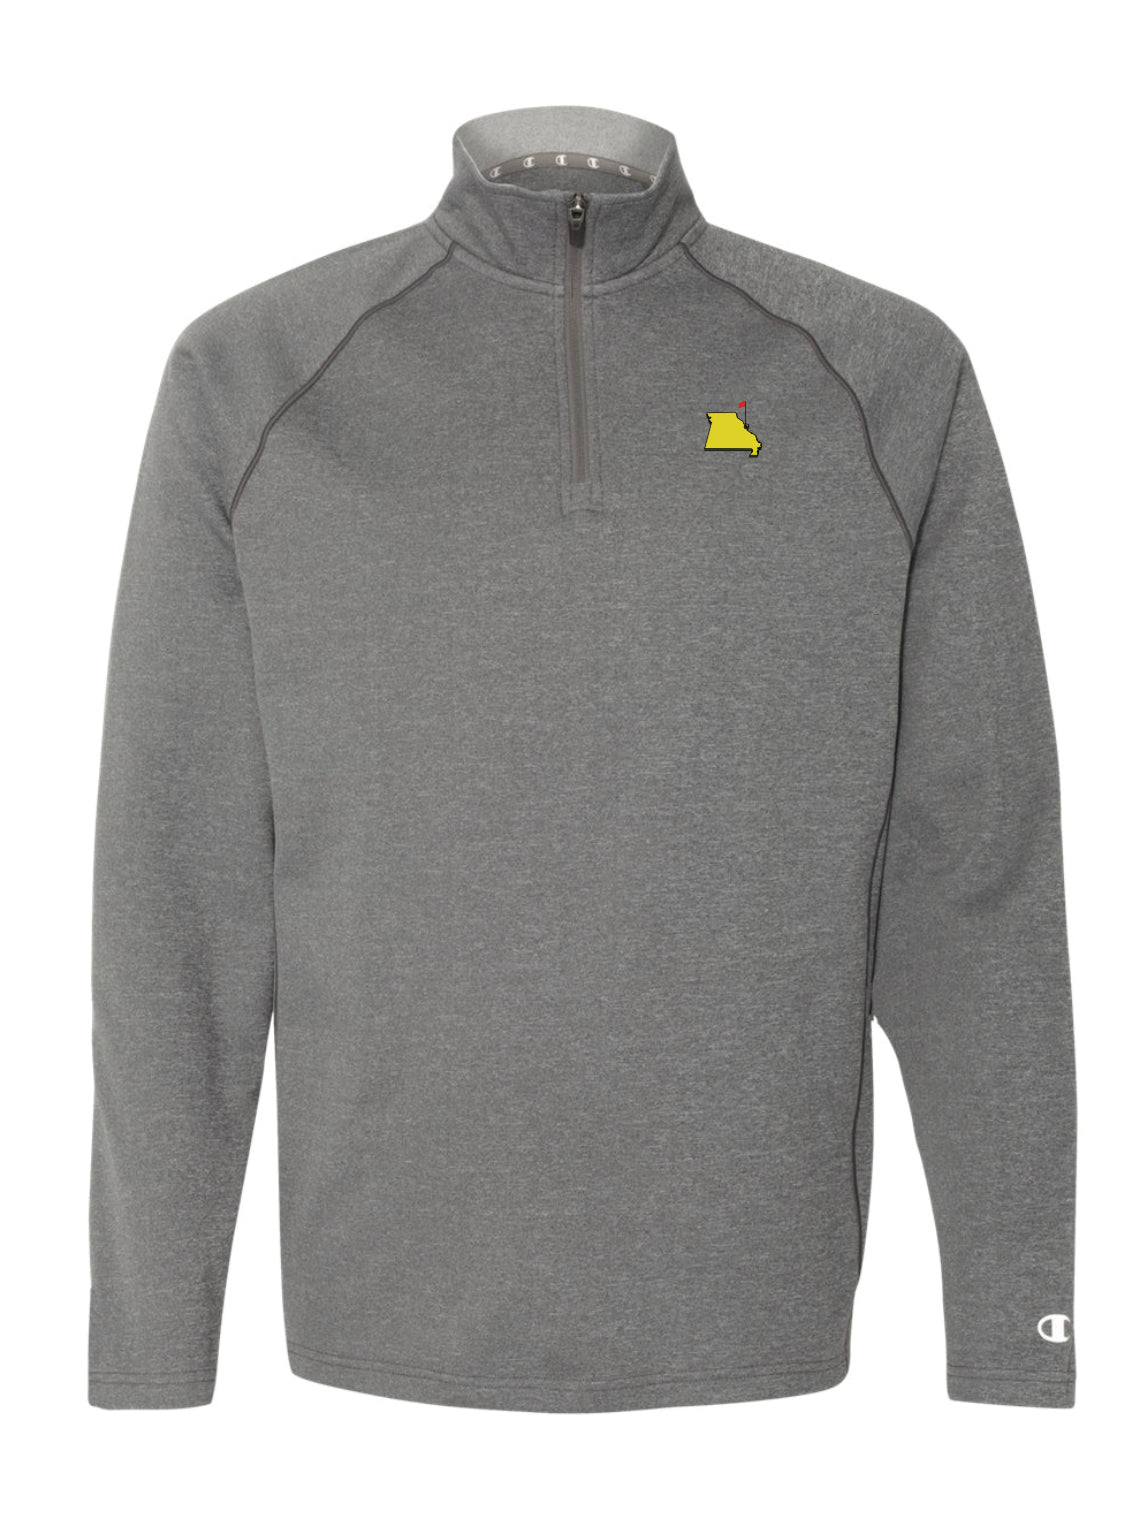 Sold Out: The Dotem Champion Performance 1/4 Zip